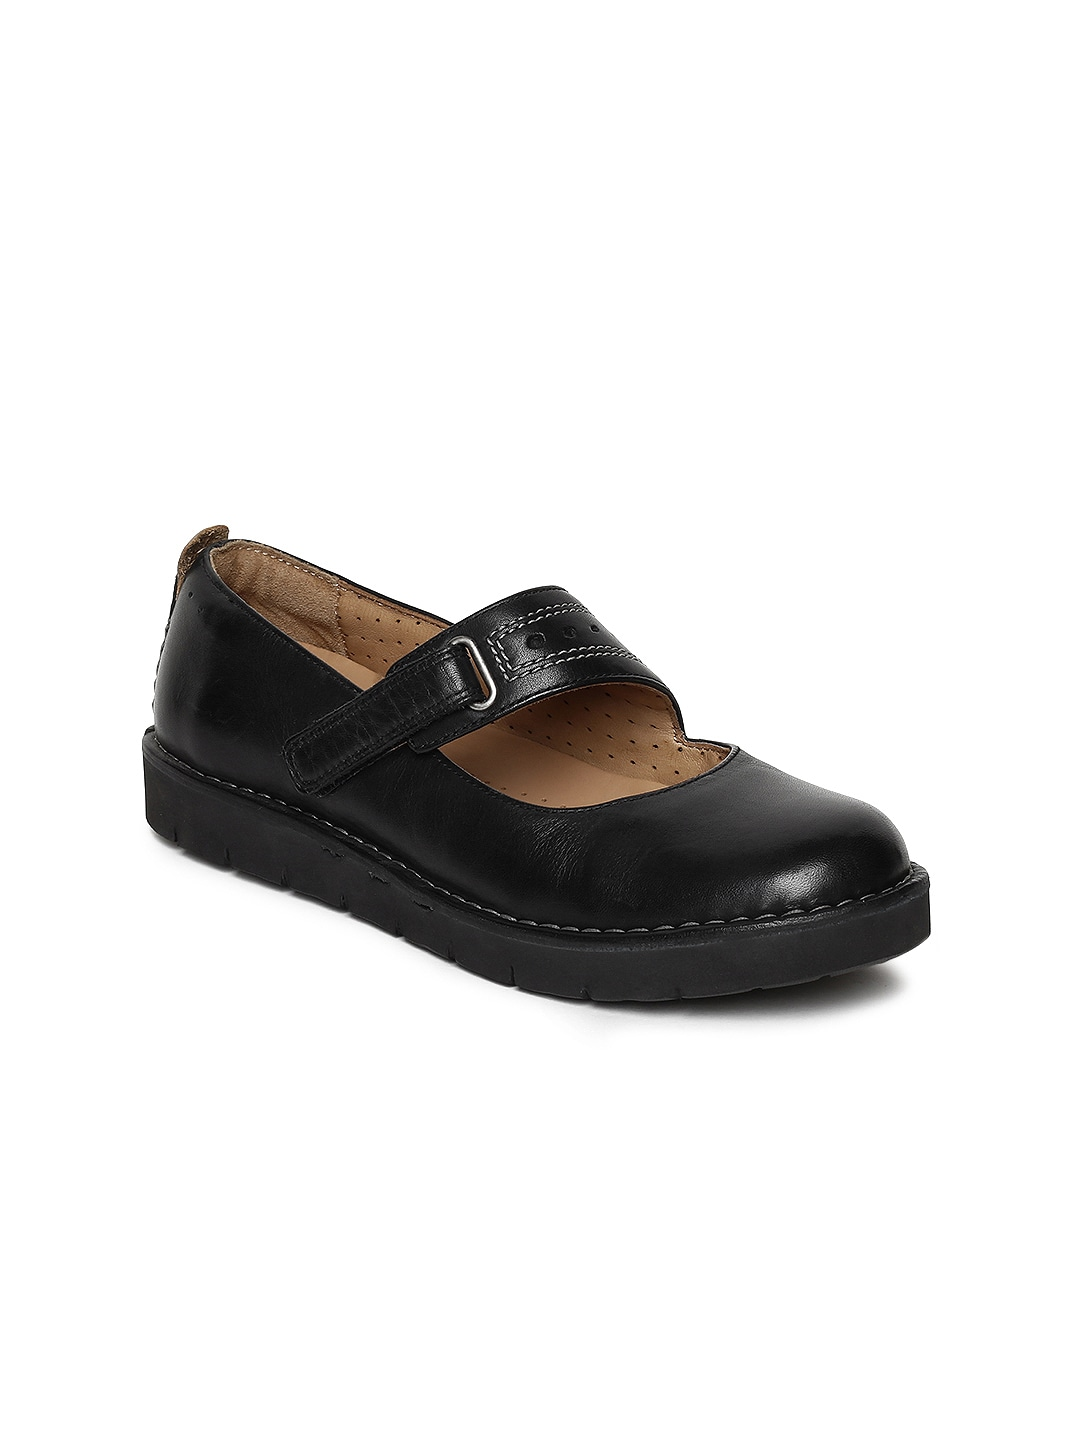 78f3e7b403bf4e Women s Clarks Shoes - Buy Clarks Shoes for Women Online in India